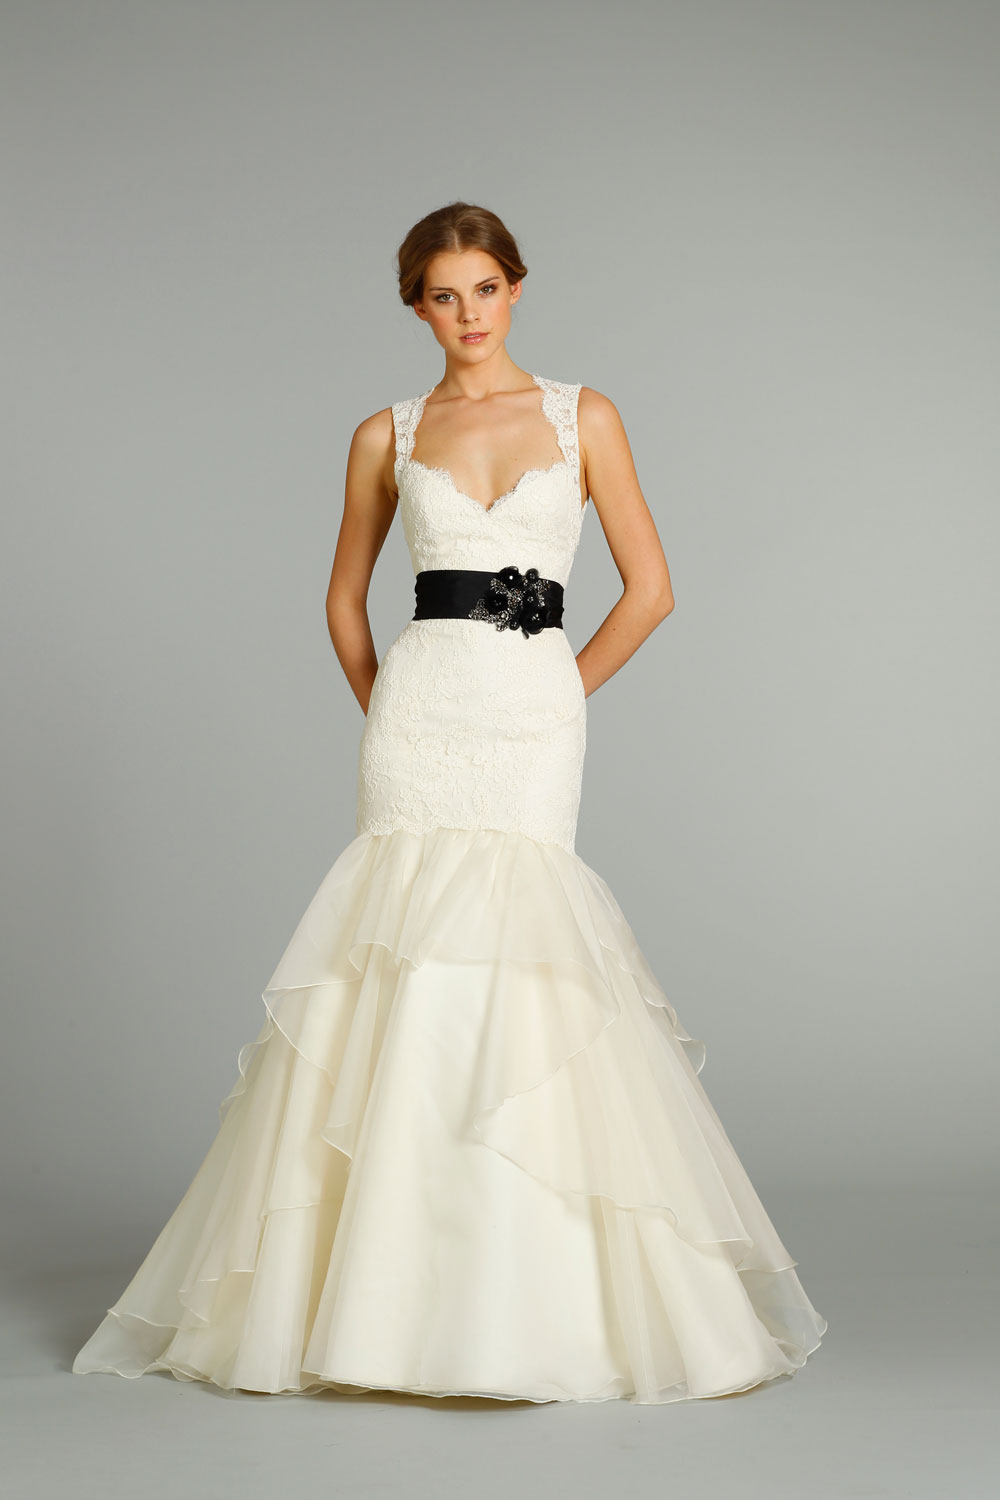 Fall-2012-wedding-dresses-jlm-couture-bridal-jim-hjelm-8262_front.original